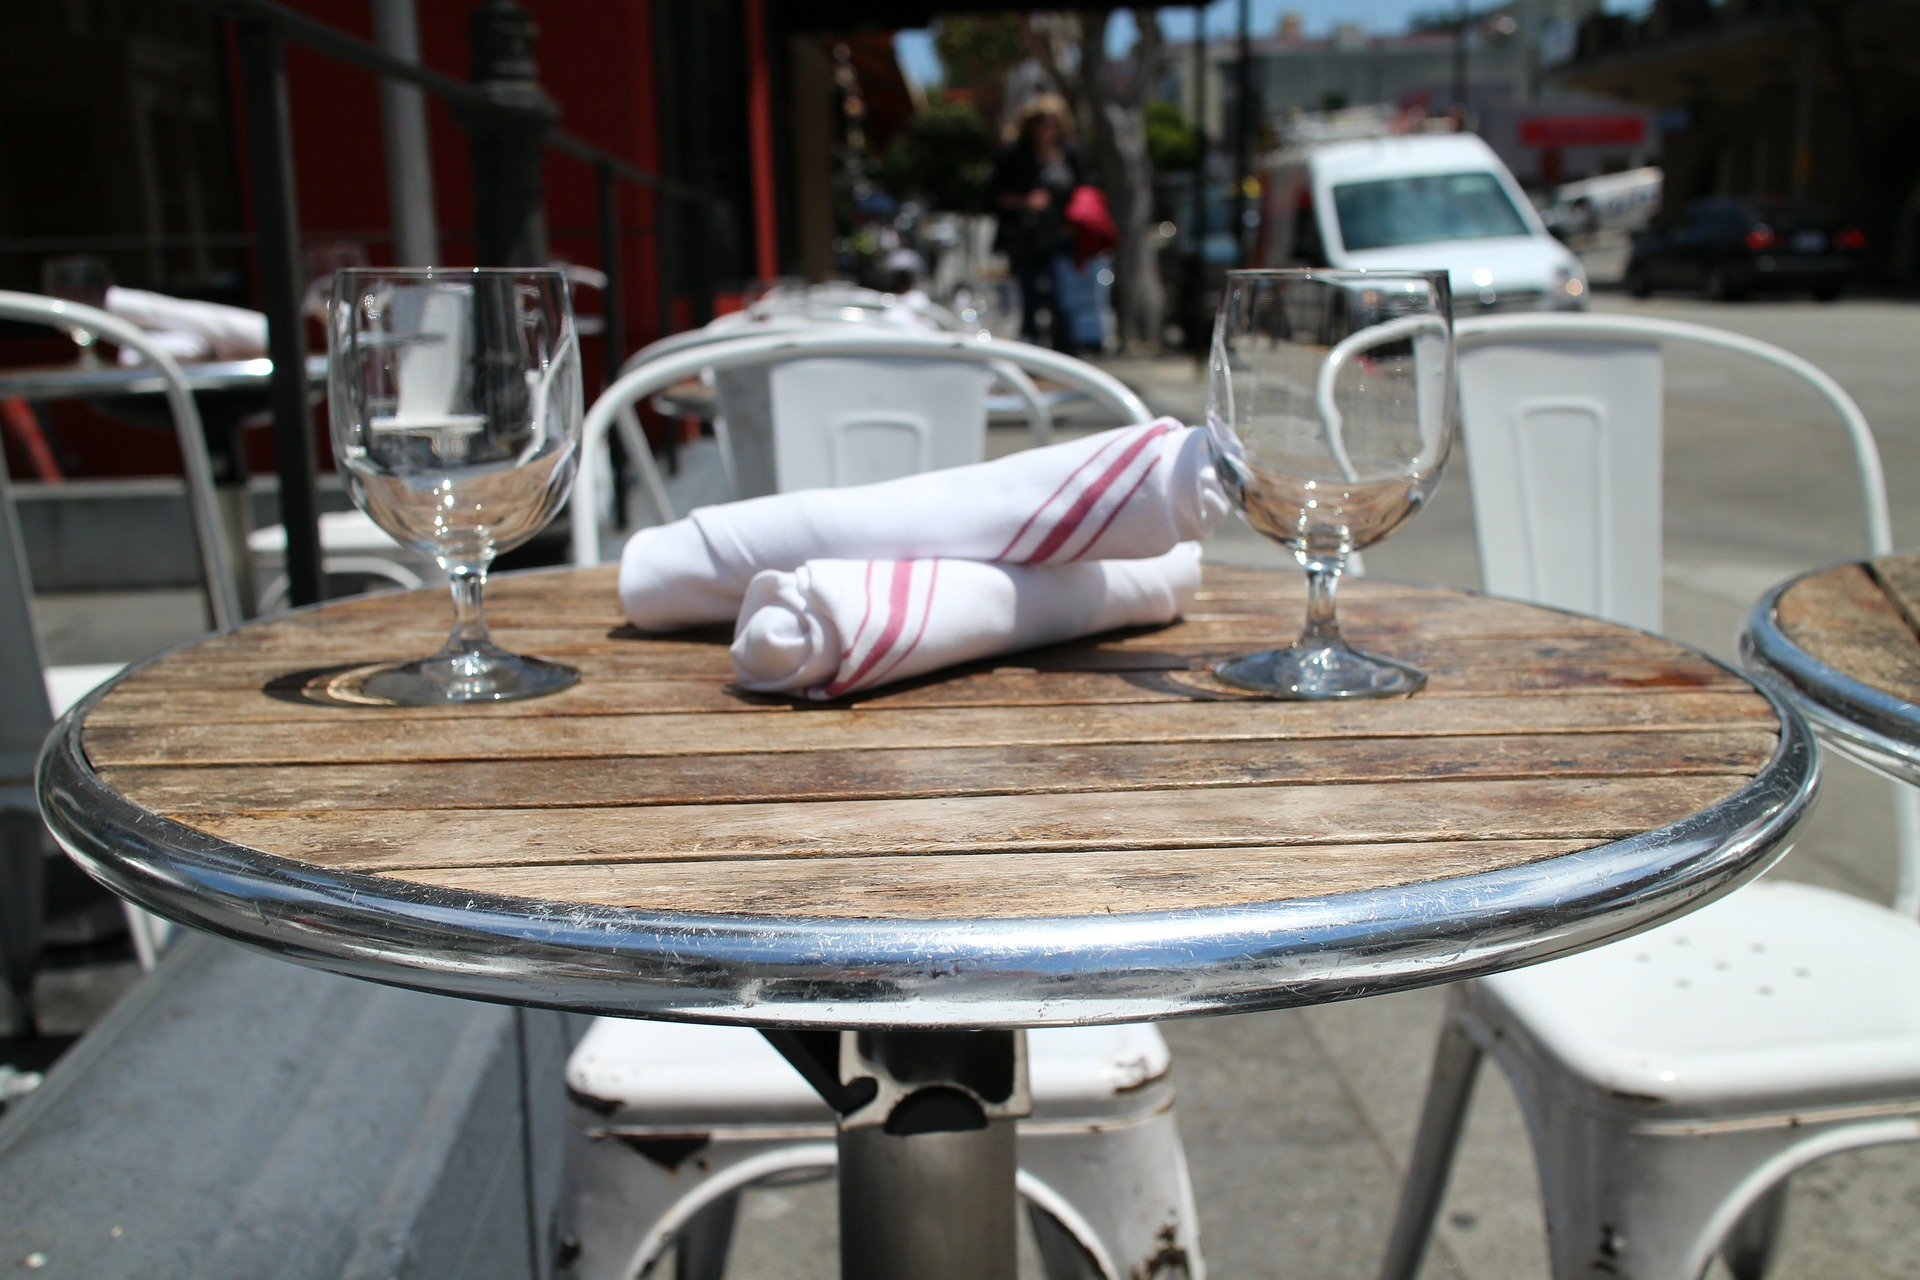 Outdoor Dining Update from Mayor & NYC Hospitality Alliance